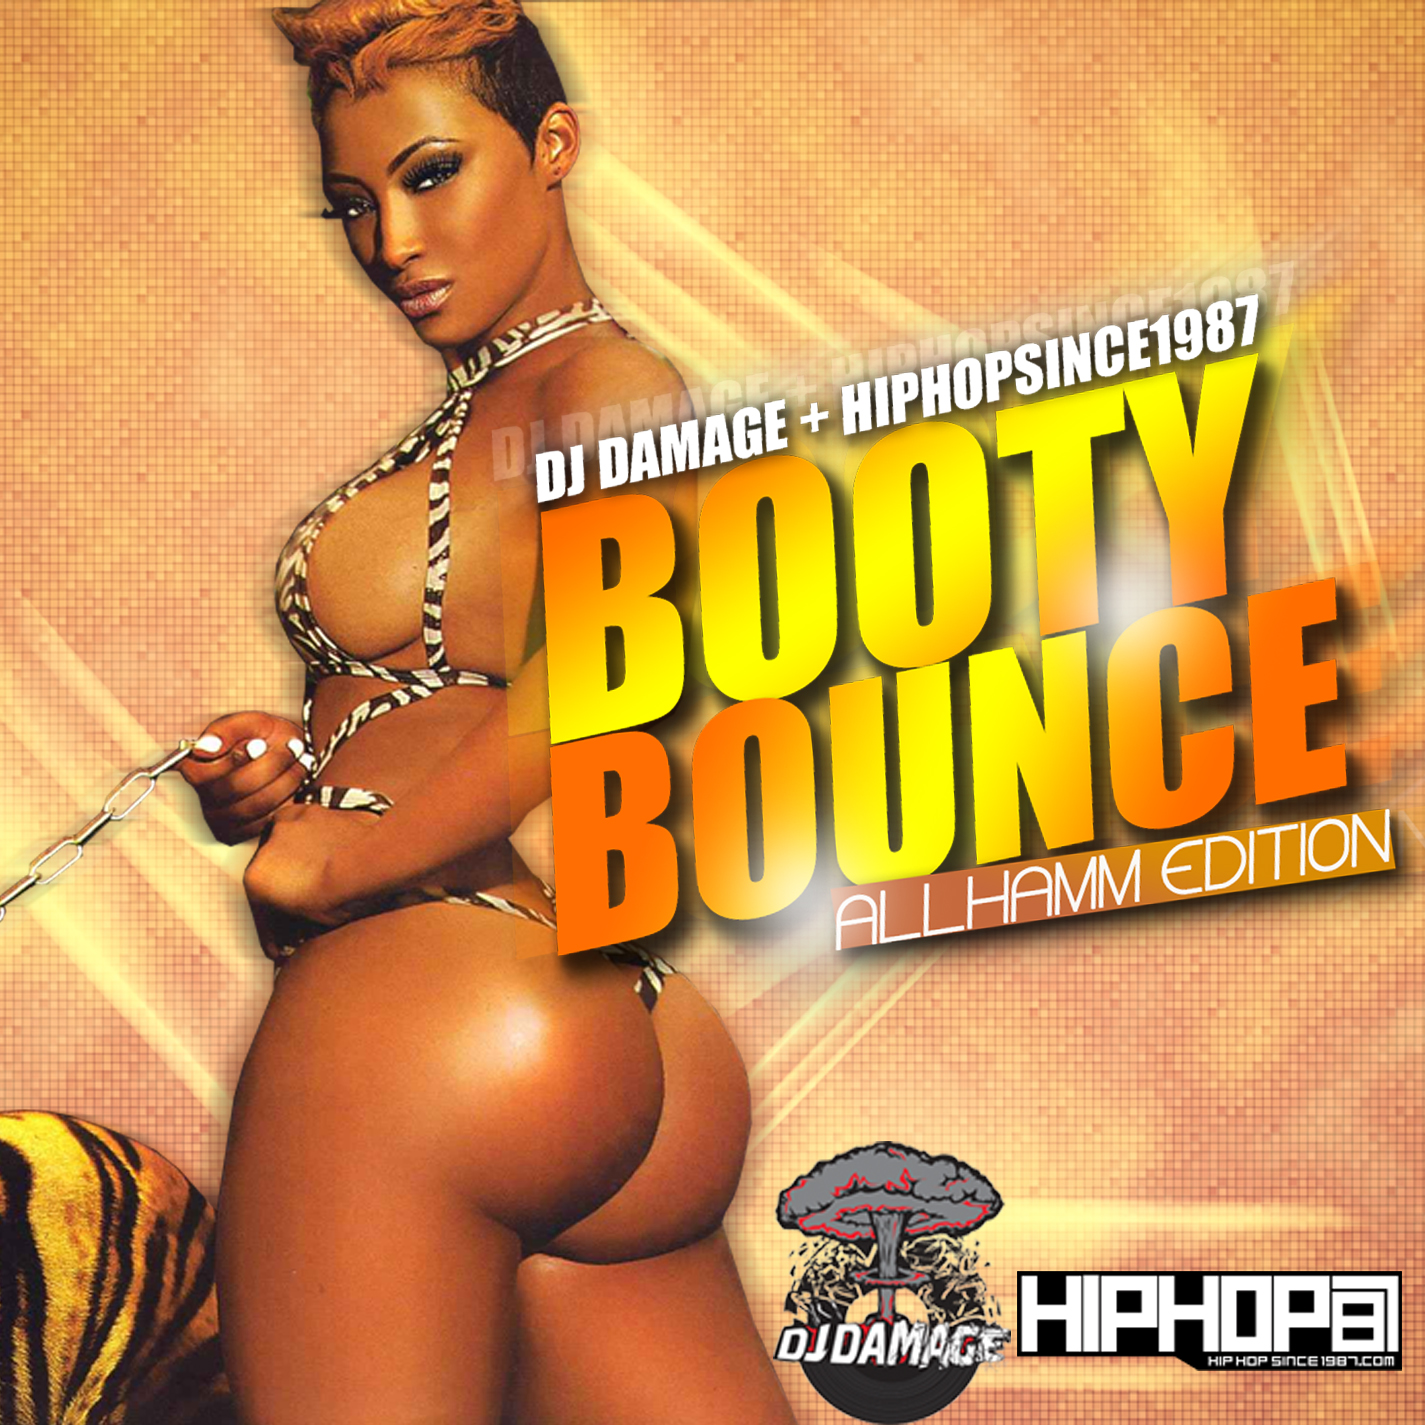 DJ Damage x HHS1987 - Booty Bounce (All Hamm Edition) (Mixtape)